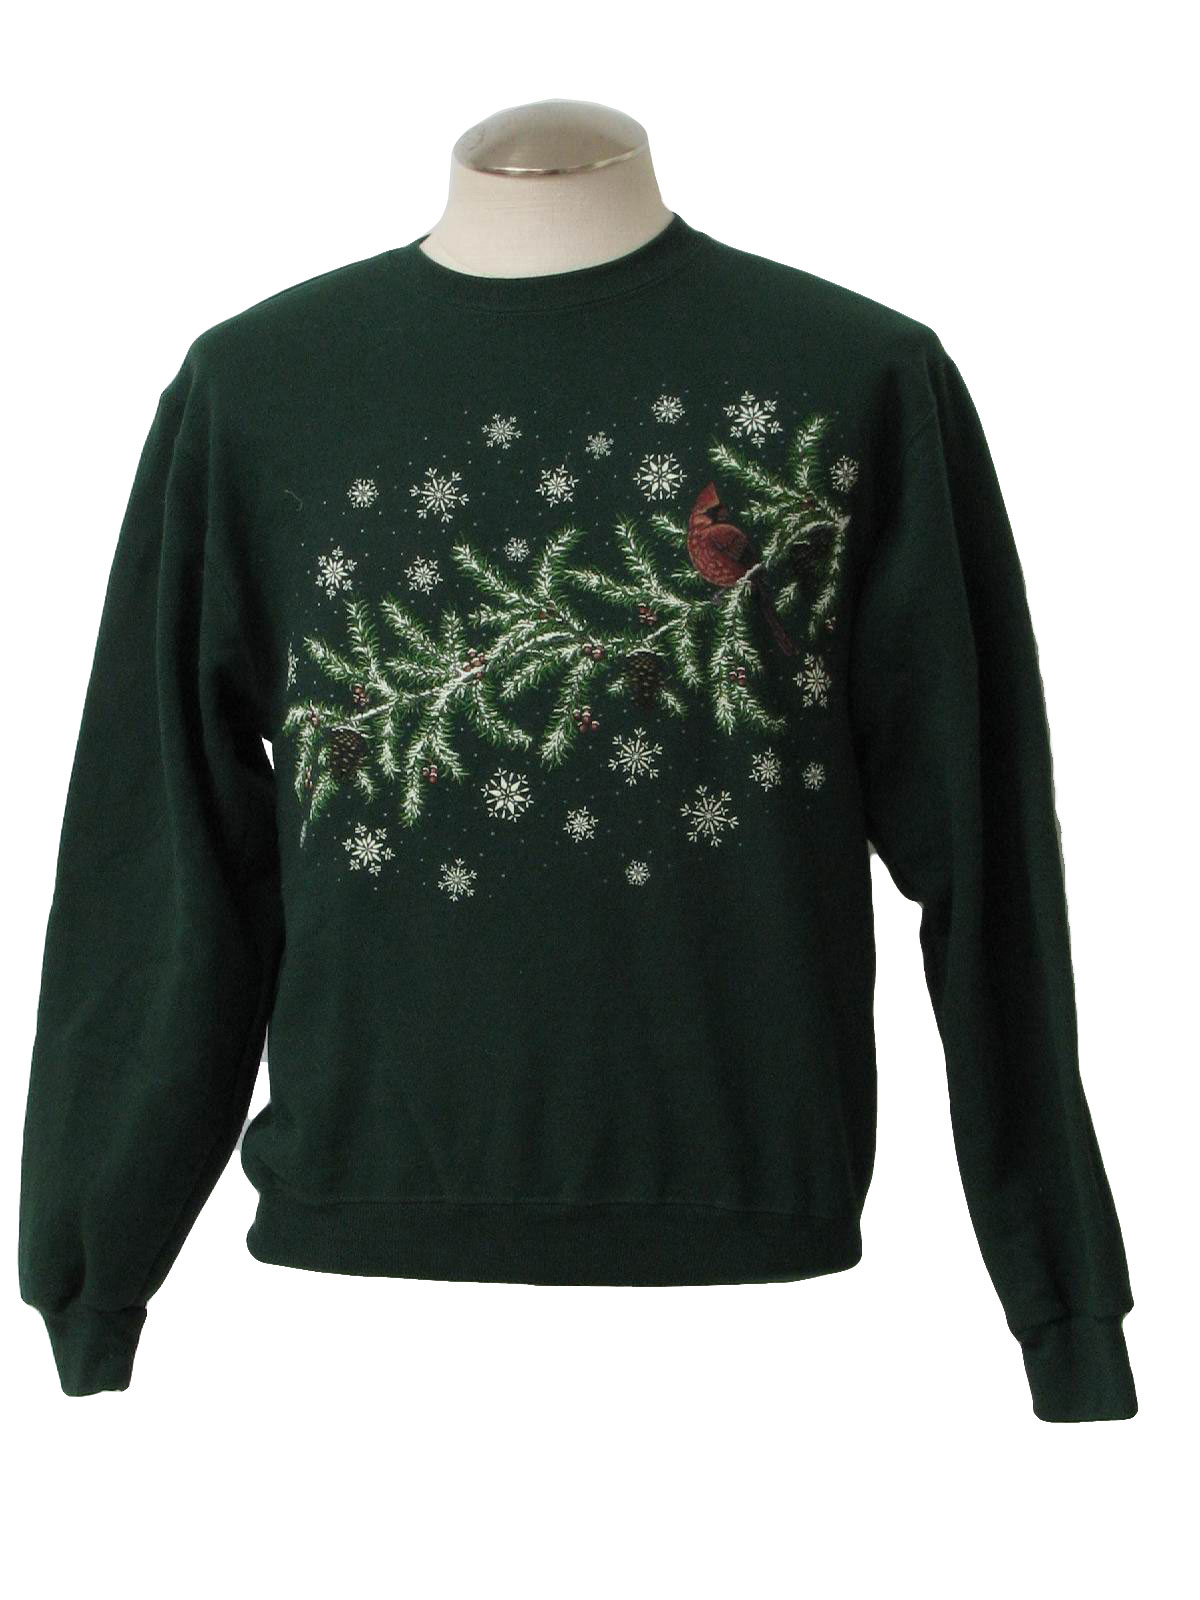 Womens Ugly Christmas Sweatshirt Jerzees Womens Green